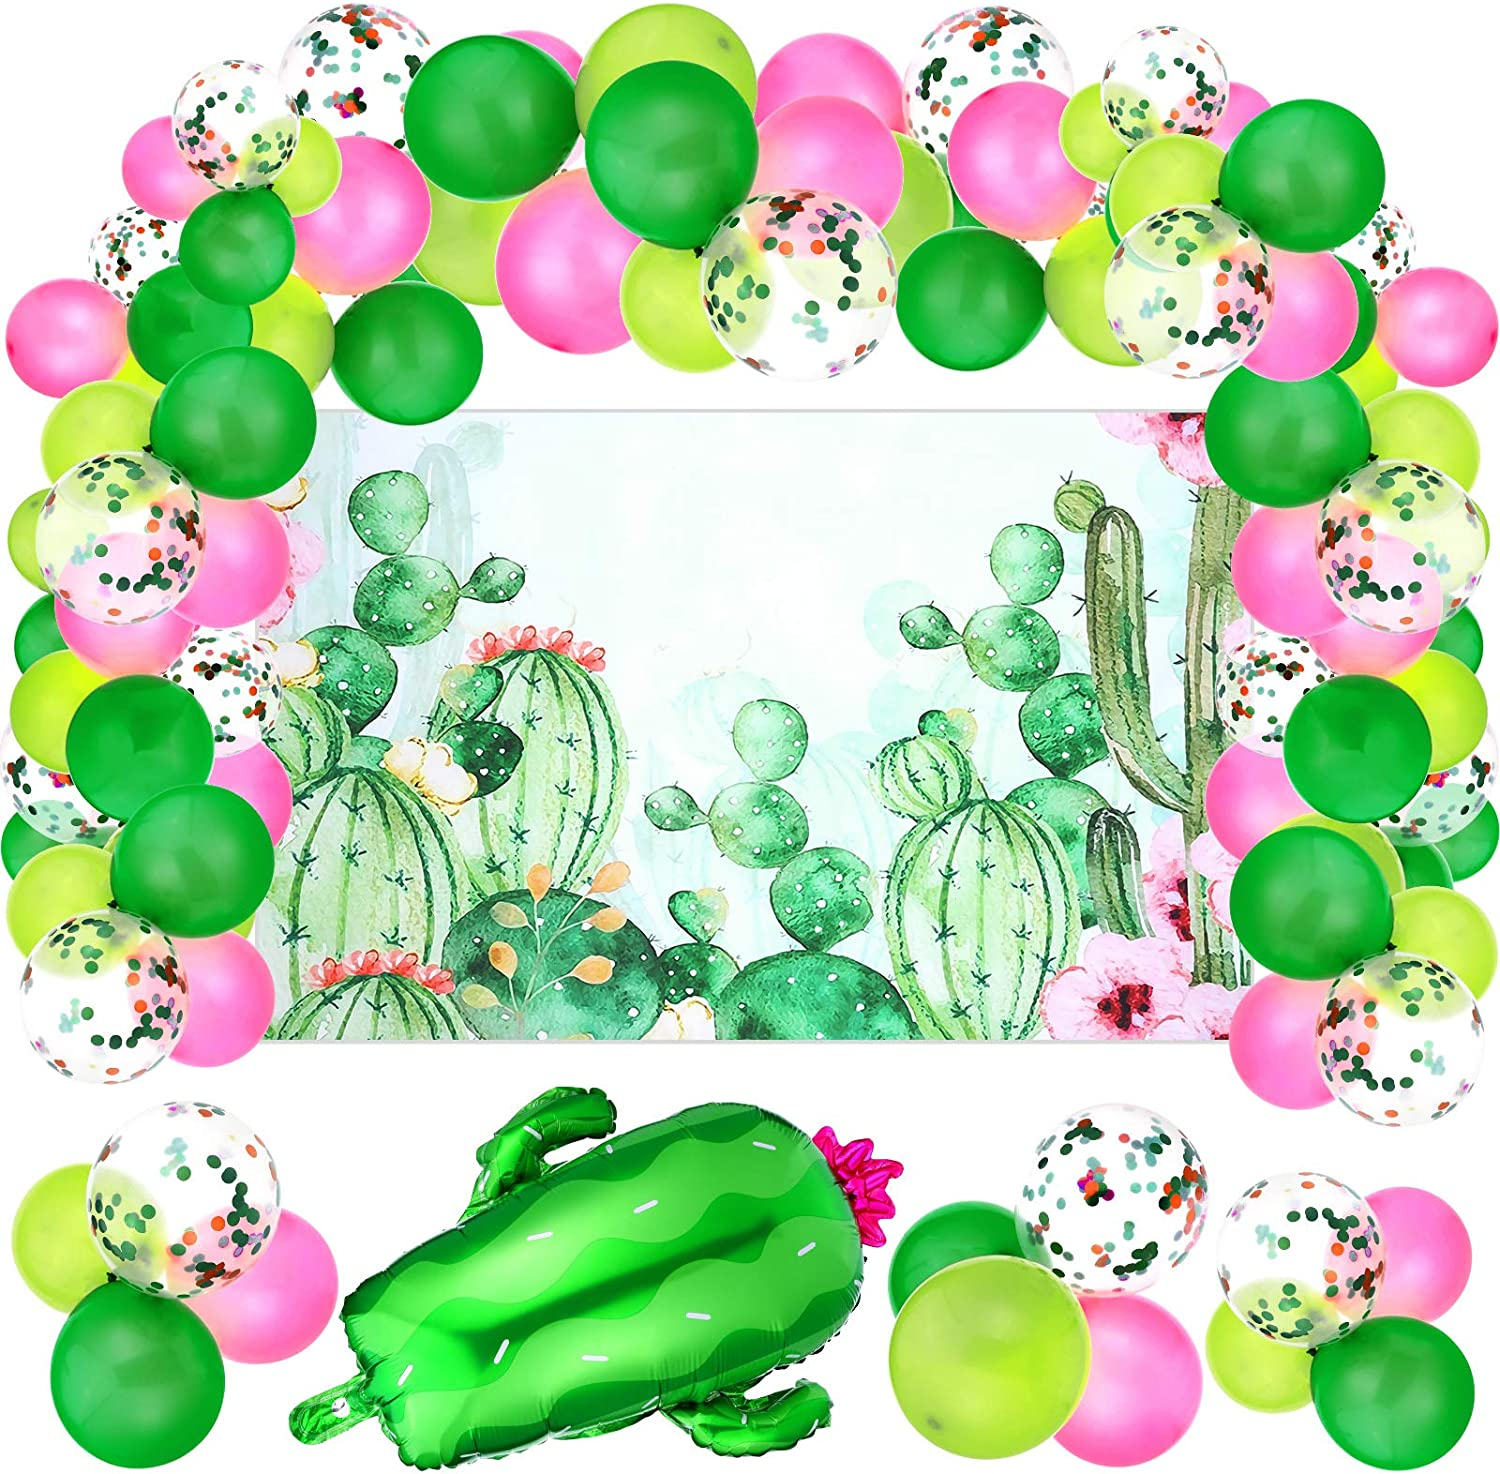 72 Pieces Cactus Party Decorations Set, Includes Floral Cactus Backdrop and Foil Balloon Confetti Balloons for Garland Summer Fiesta Jungle Baby Shower Wedding Office Birthday Party Supplies